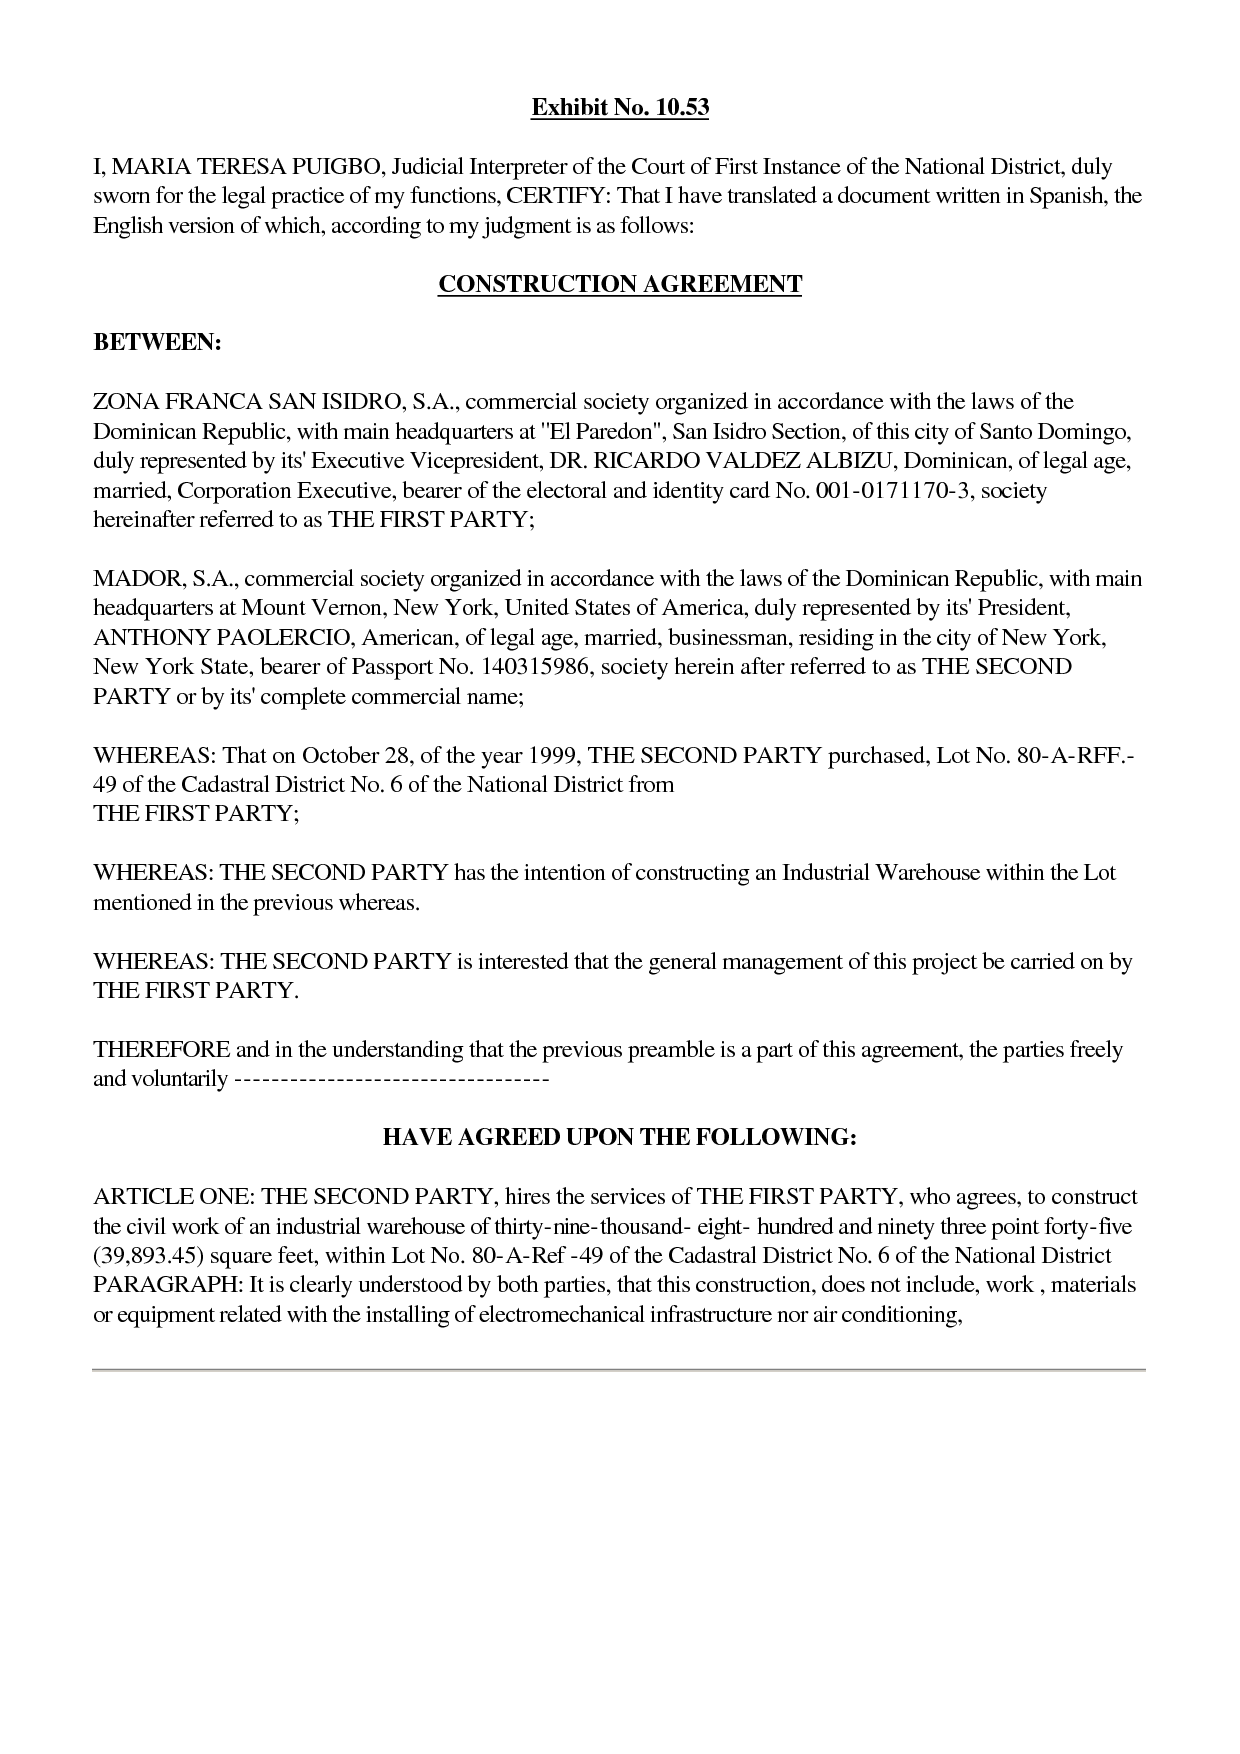 Construction Agreement Michael Anthony Jewelers Inc 4 28 2000